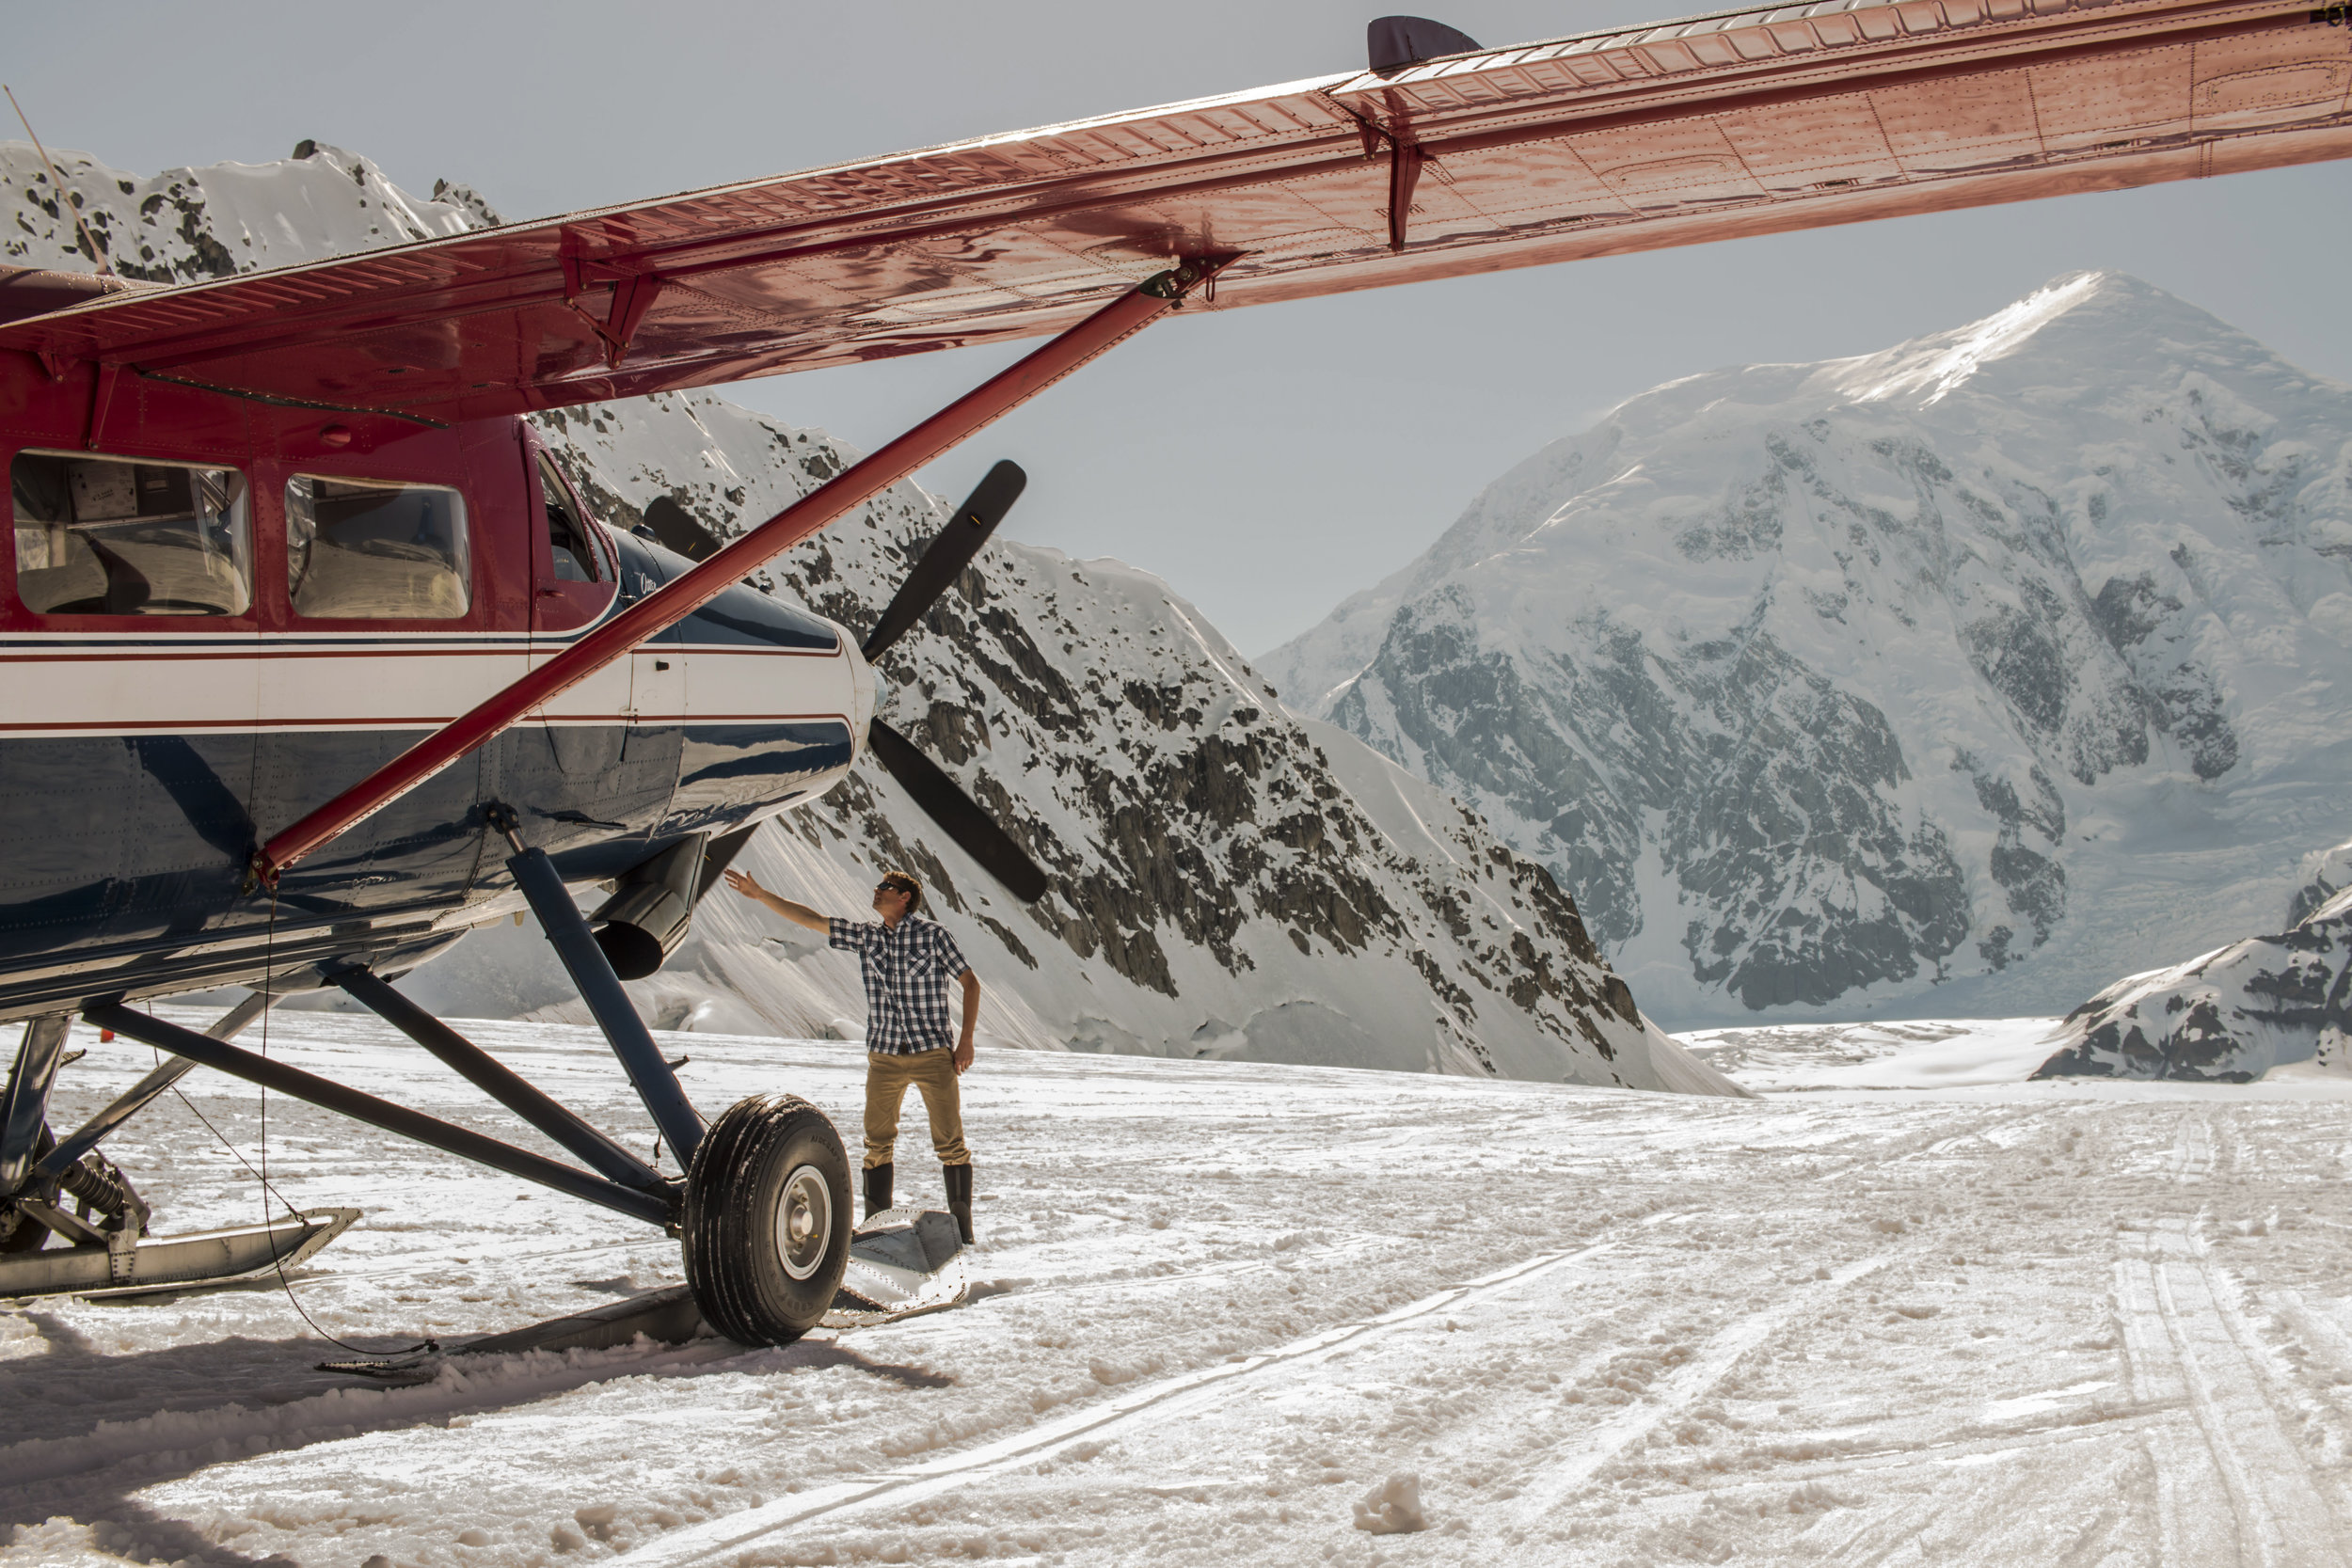 The glacier runway with Mt Foraker in the background.